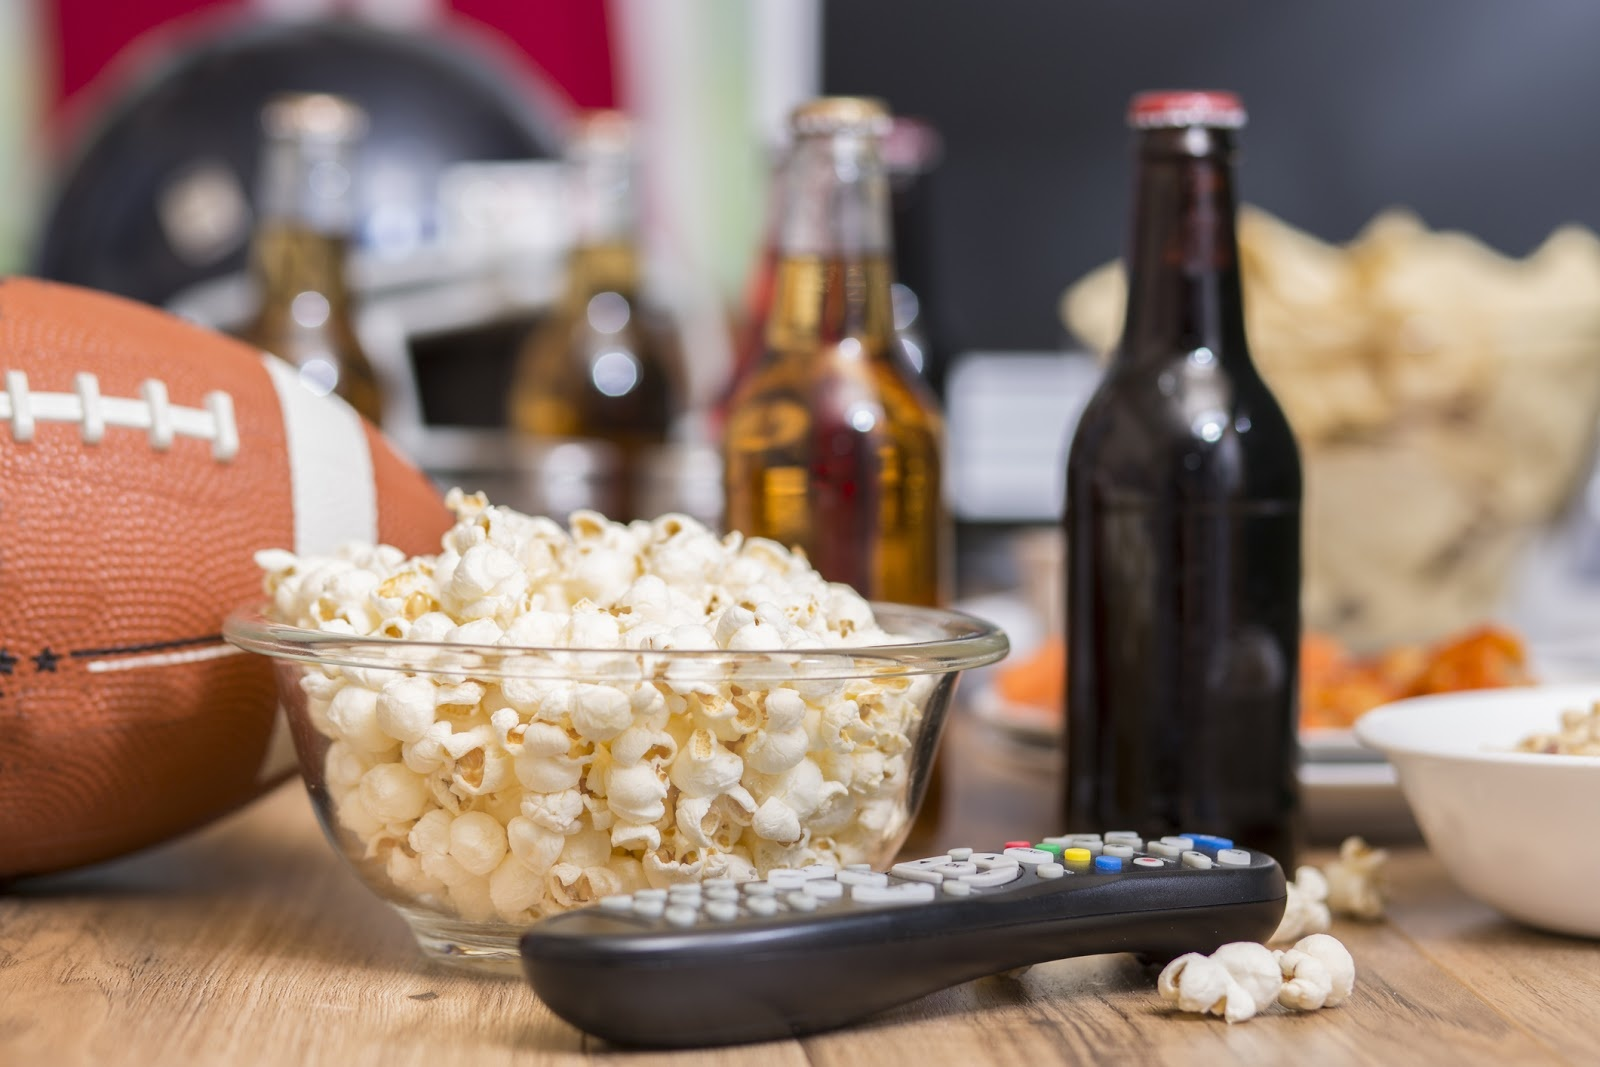 A football watching party set up with a bowl of popcorn, tv remote, football, and beers.